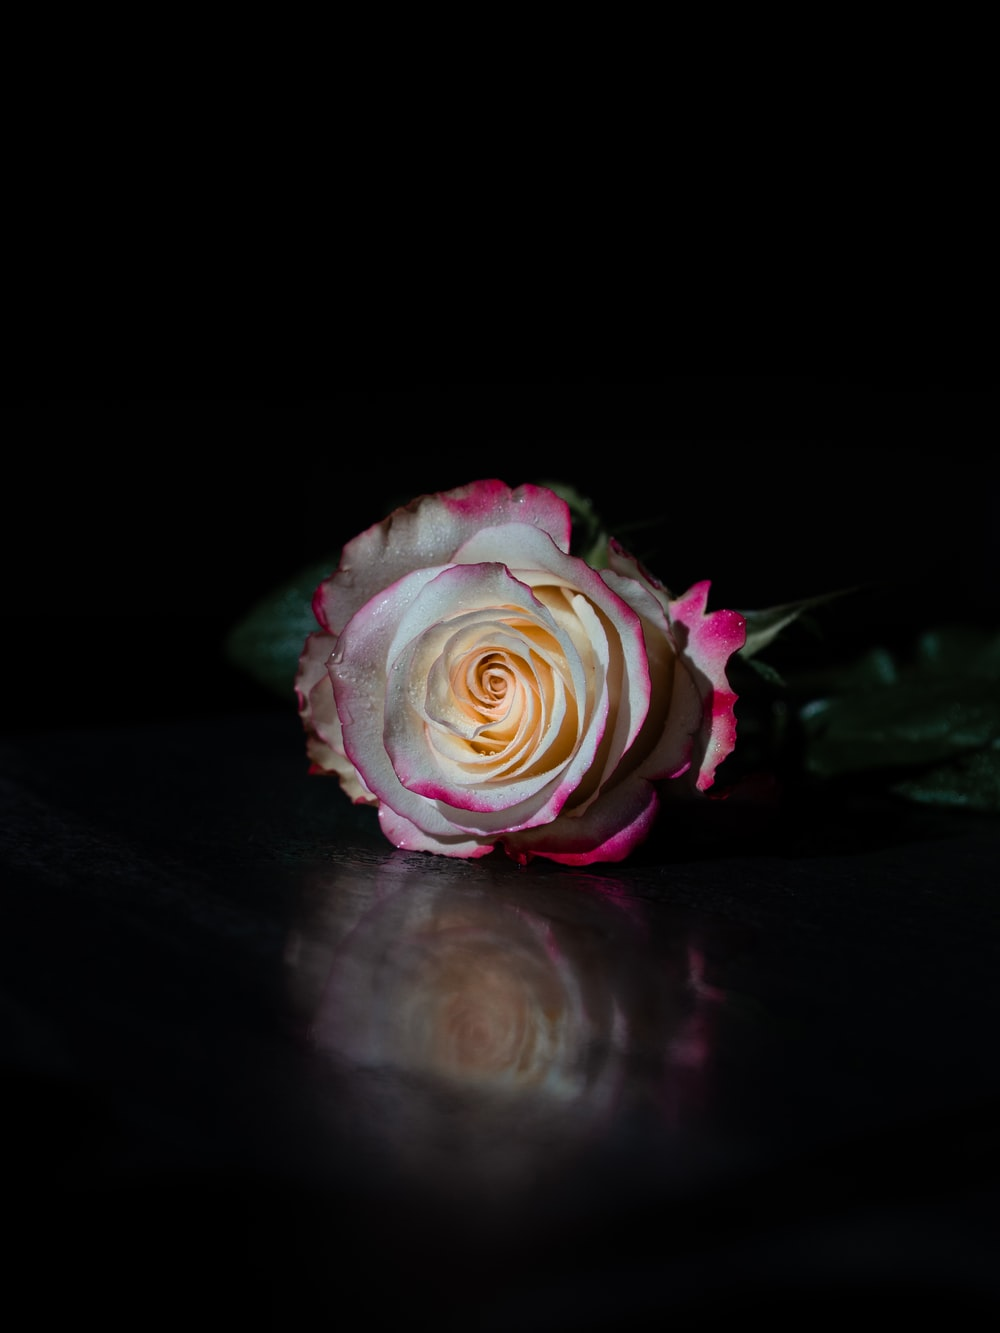 pink and white rose in black background